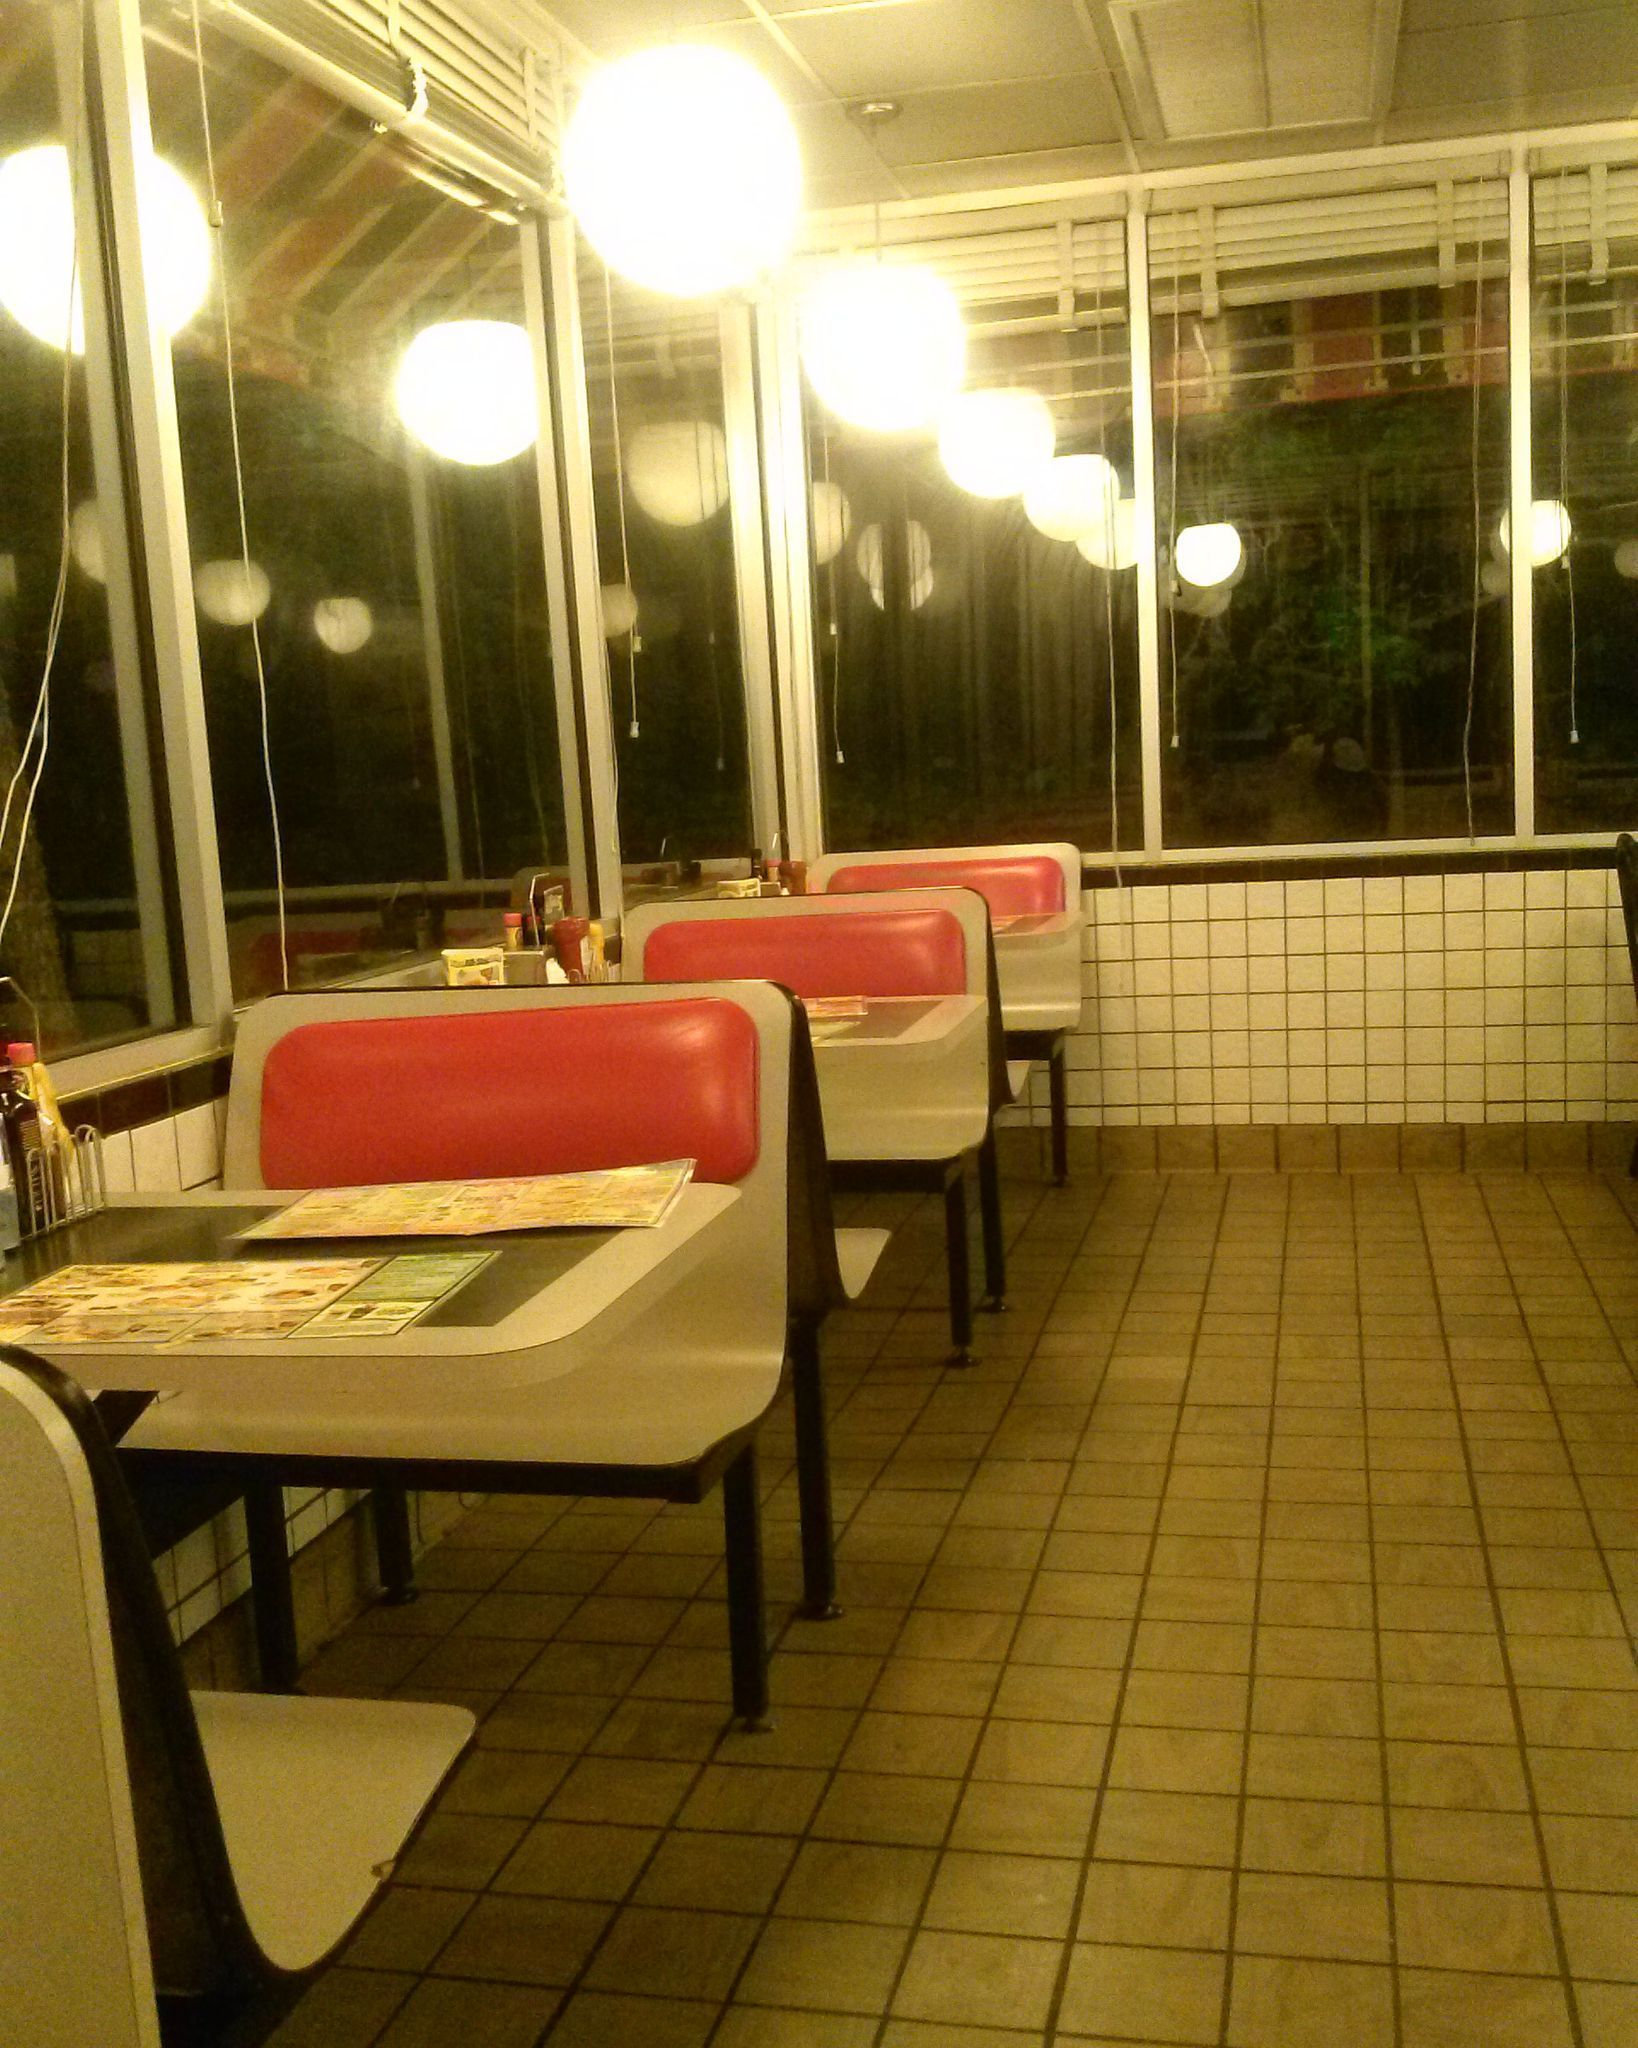 Waffle House is one of my unofficial offices when I